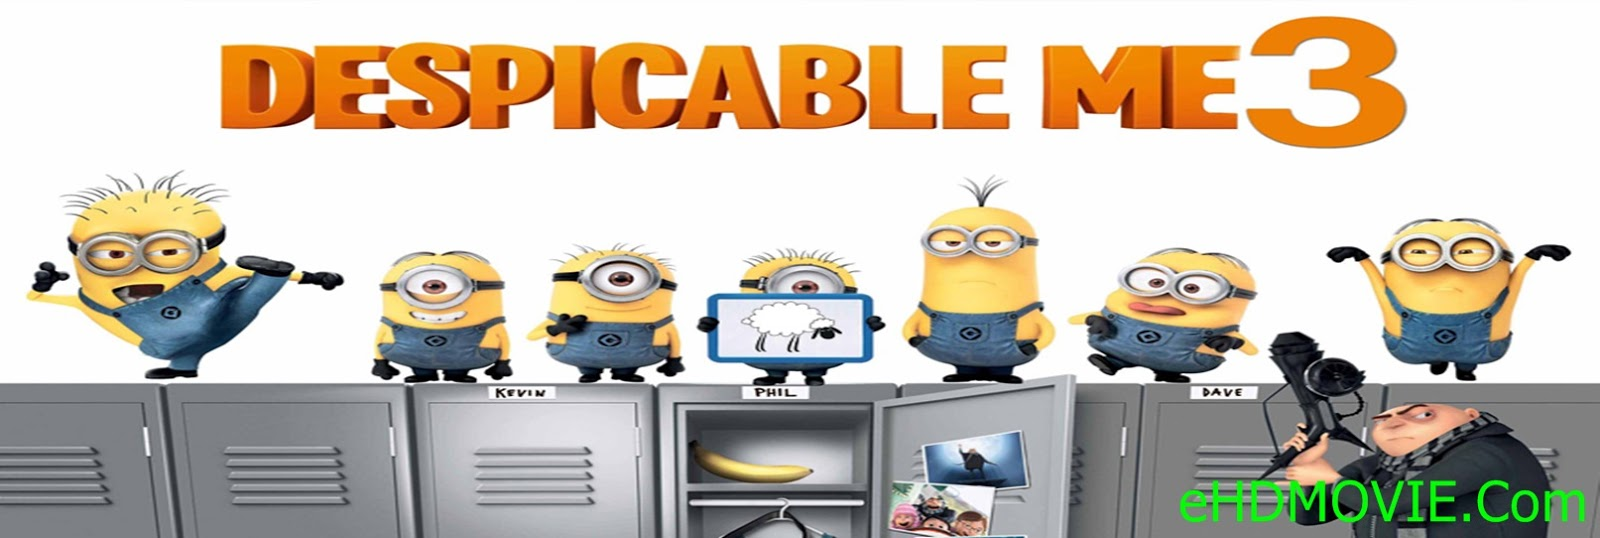 Despicable Me 3 2017 Full Movie Dual Audio [Hindi – English] 720p - 480p ORG BRRip 300MB - 750MB ESubs Free Download